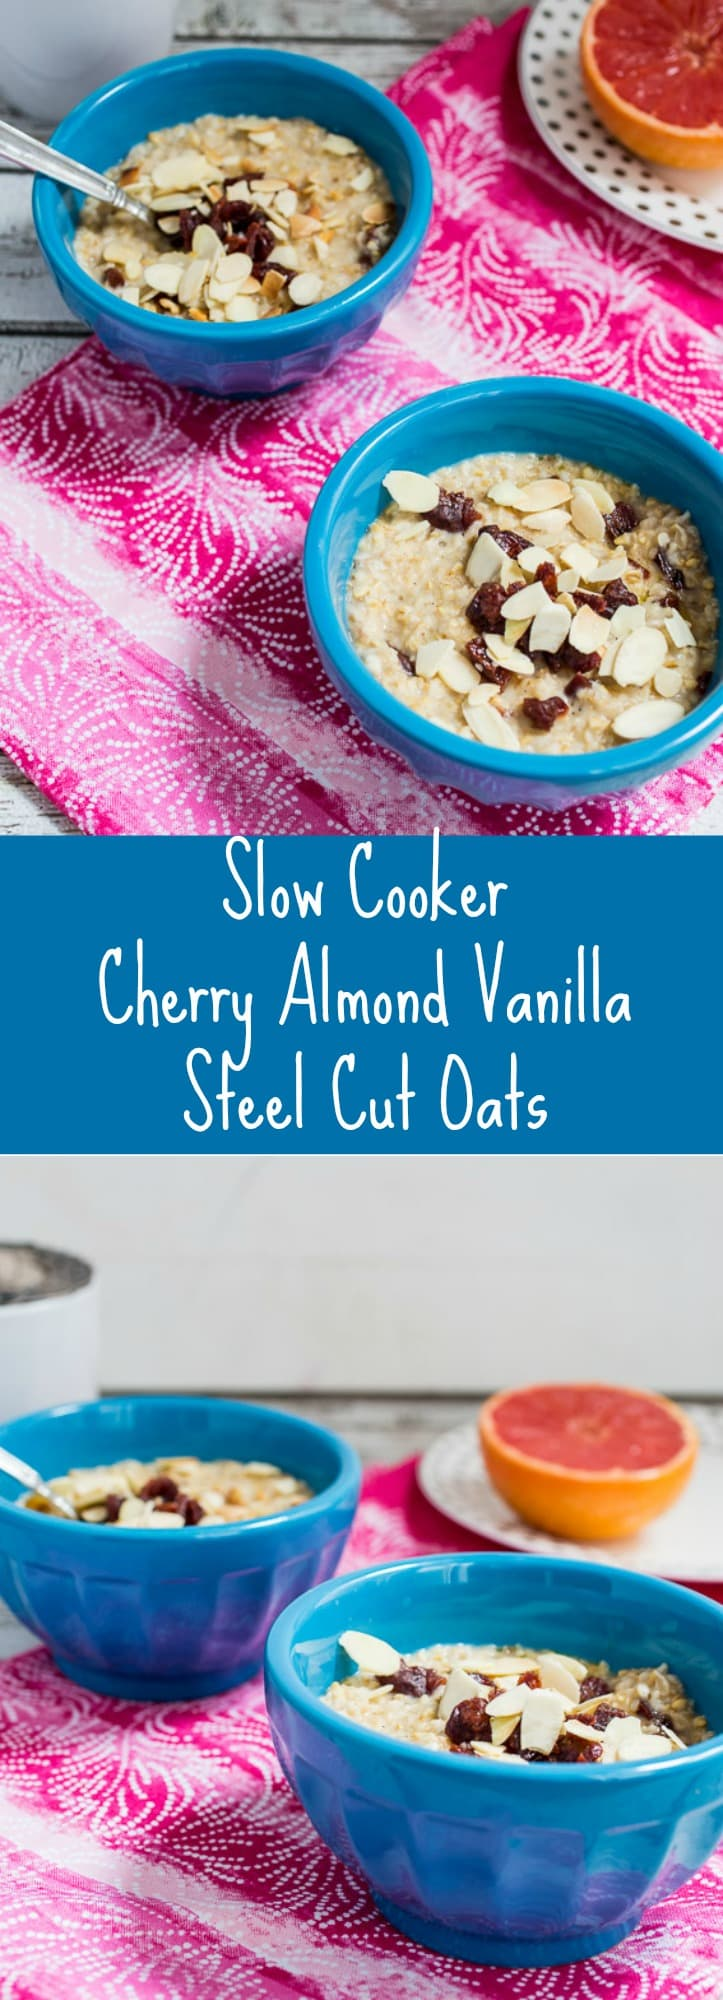 Slow Cooker Cherry Almond Vanilla Steel Cut Oats